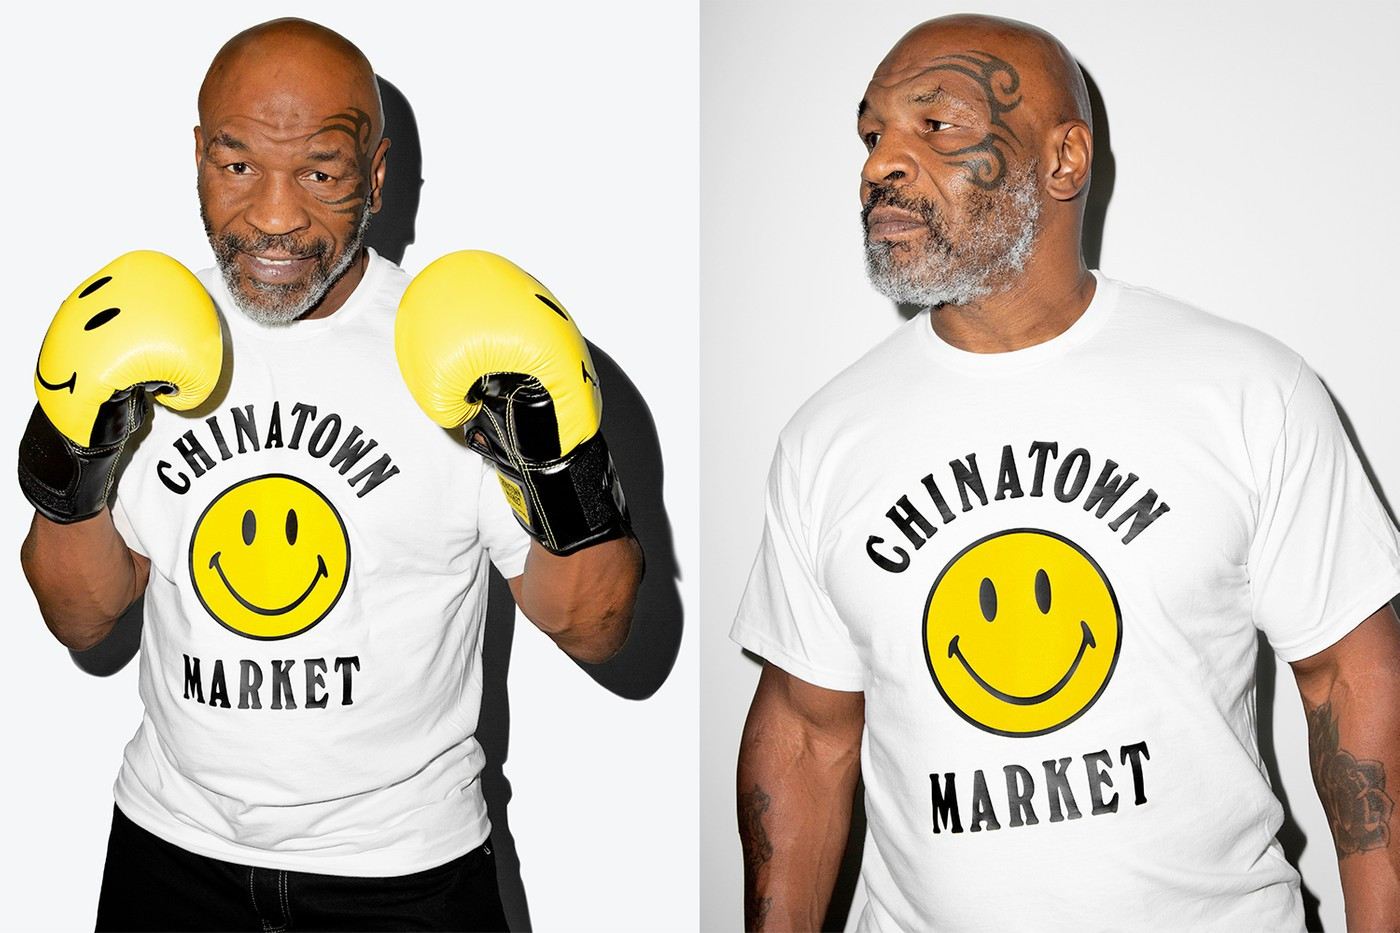 Mike Tyson Chinatown Market